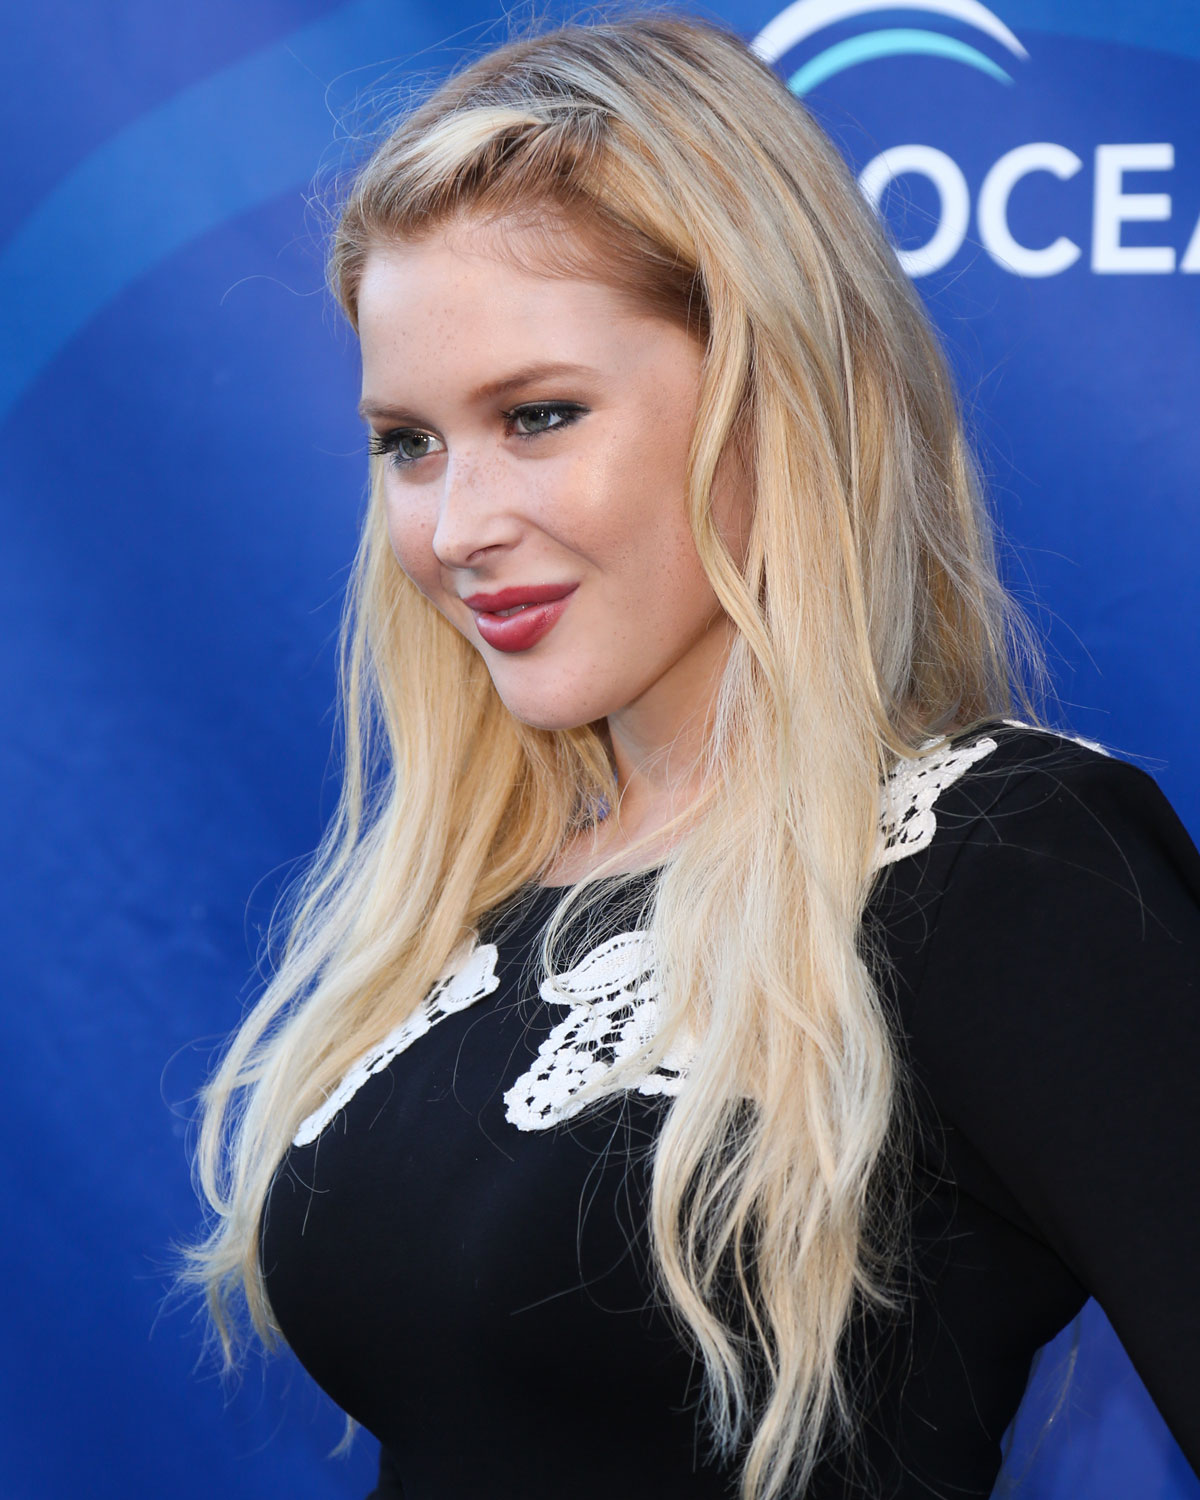 renee olstead taking a chance on love